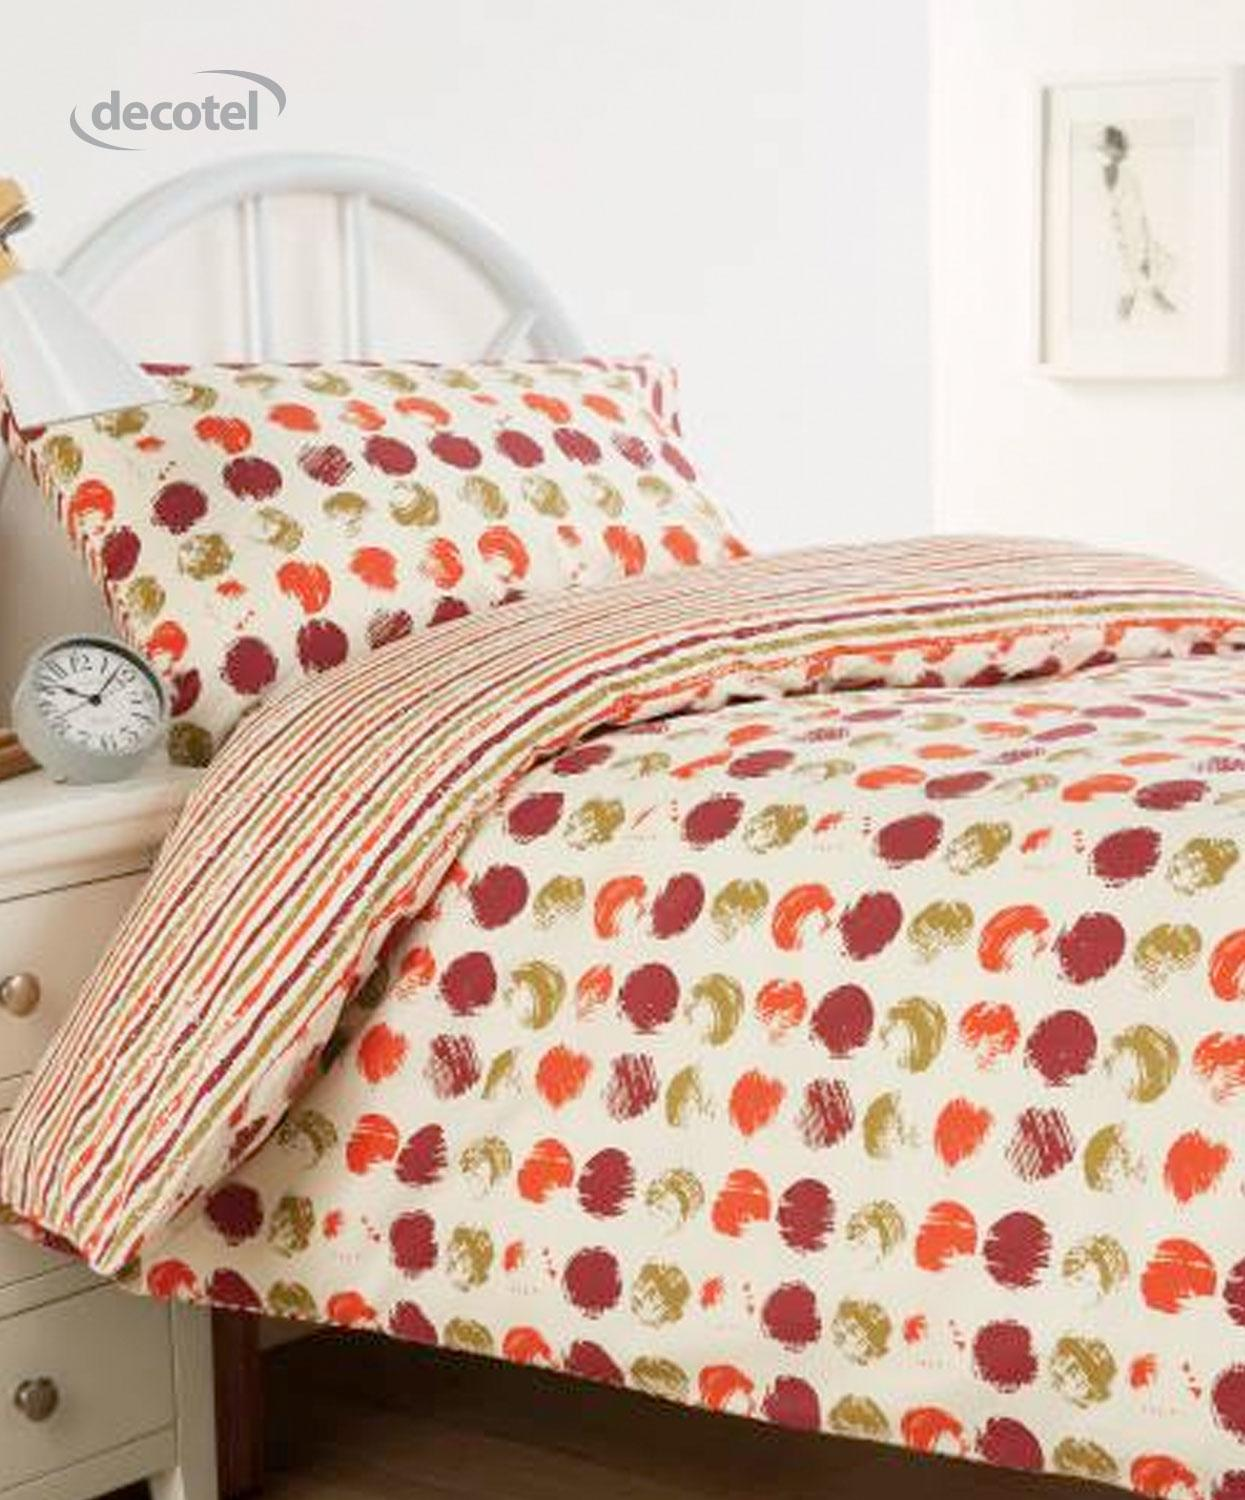 Harrow duvet cover in maroon